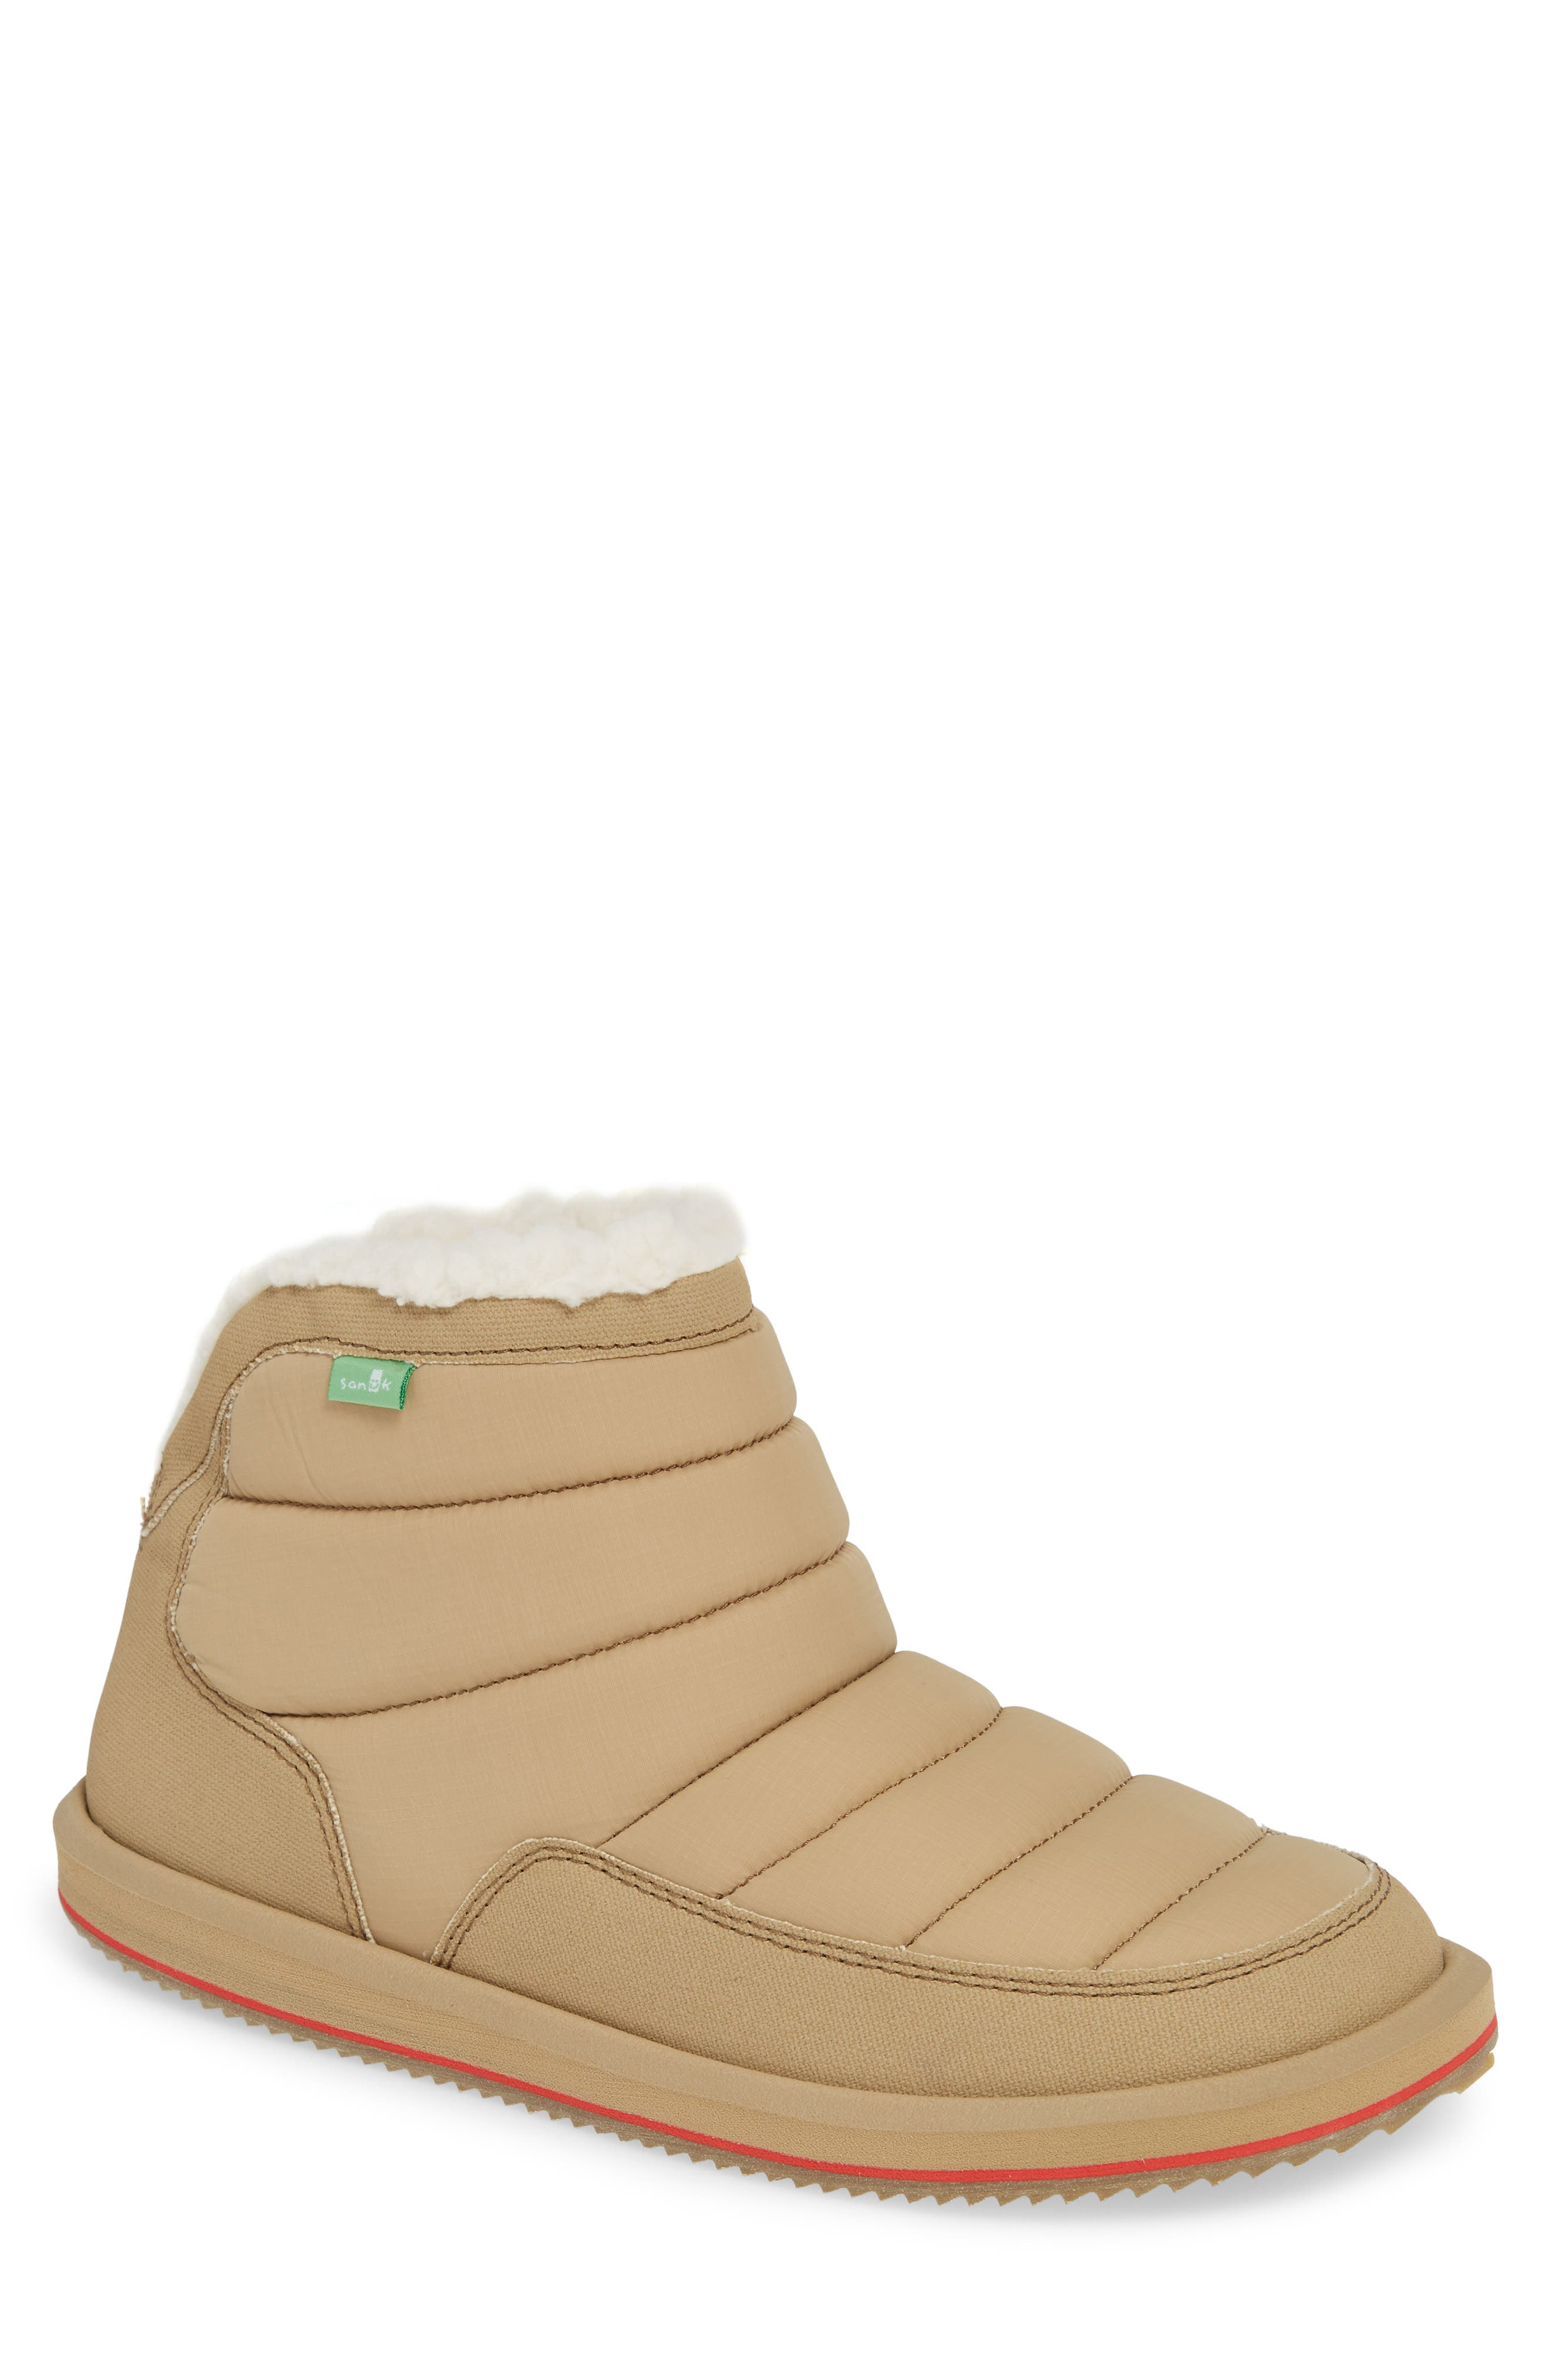 Puff & Chill Weather Boot,                         Main,                         color, TAN